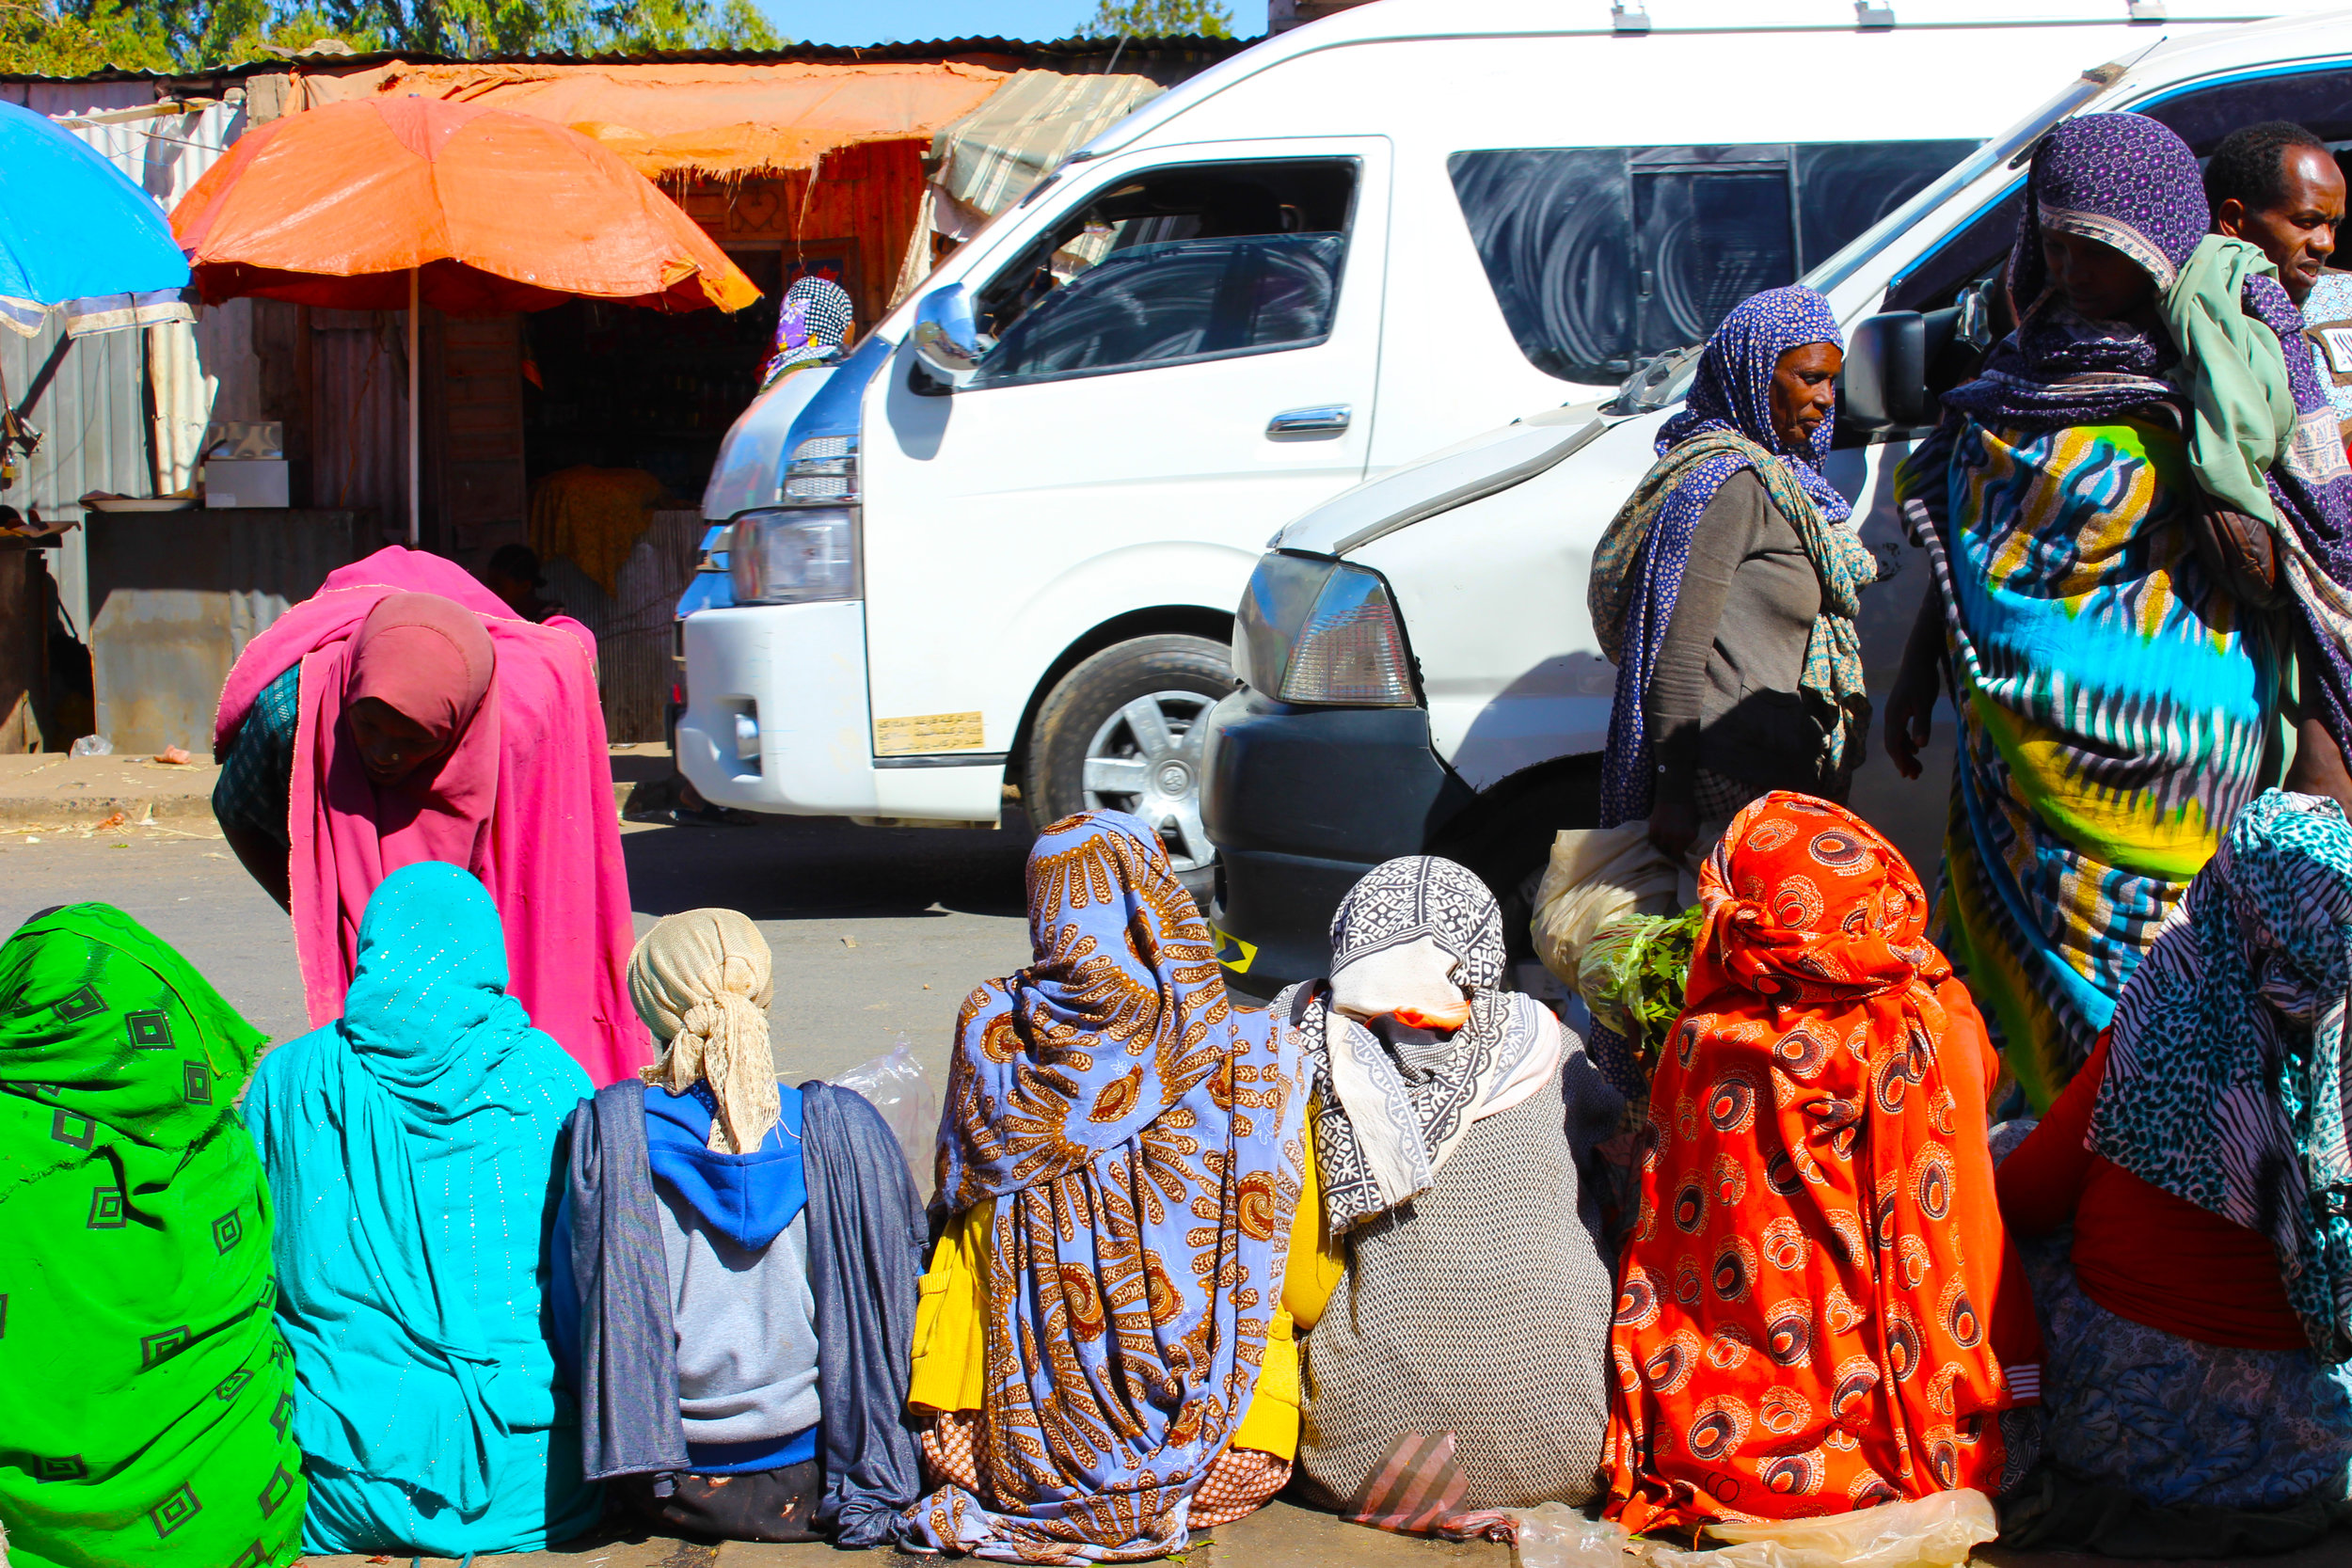 Locals in Harar sit and wait as buses go by. Photo Credit: Katie Silcox